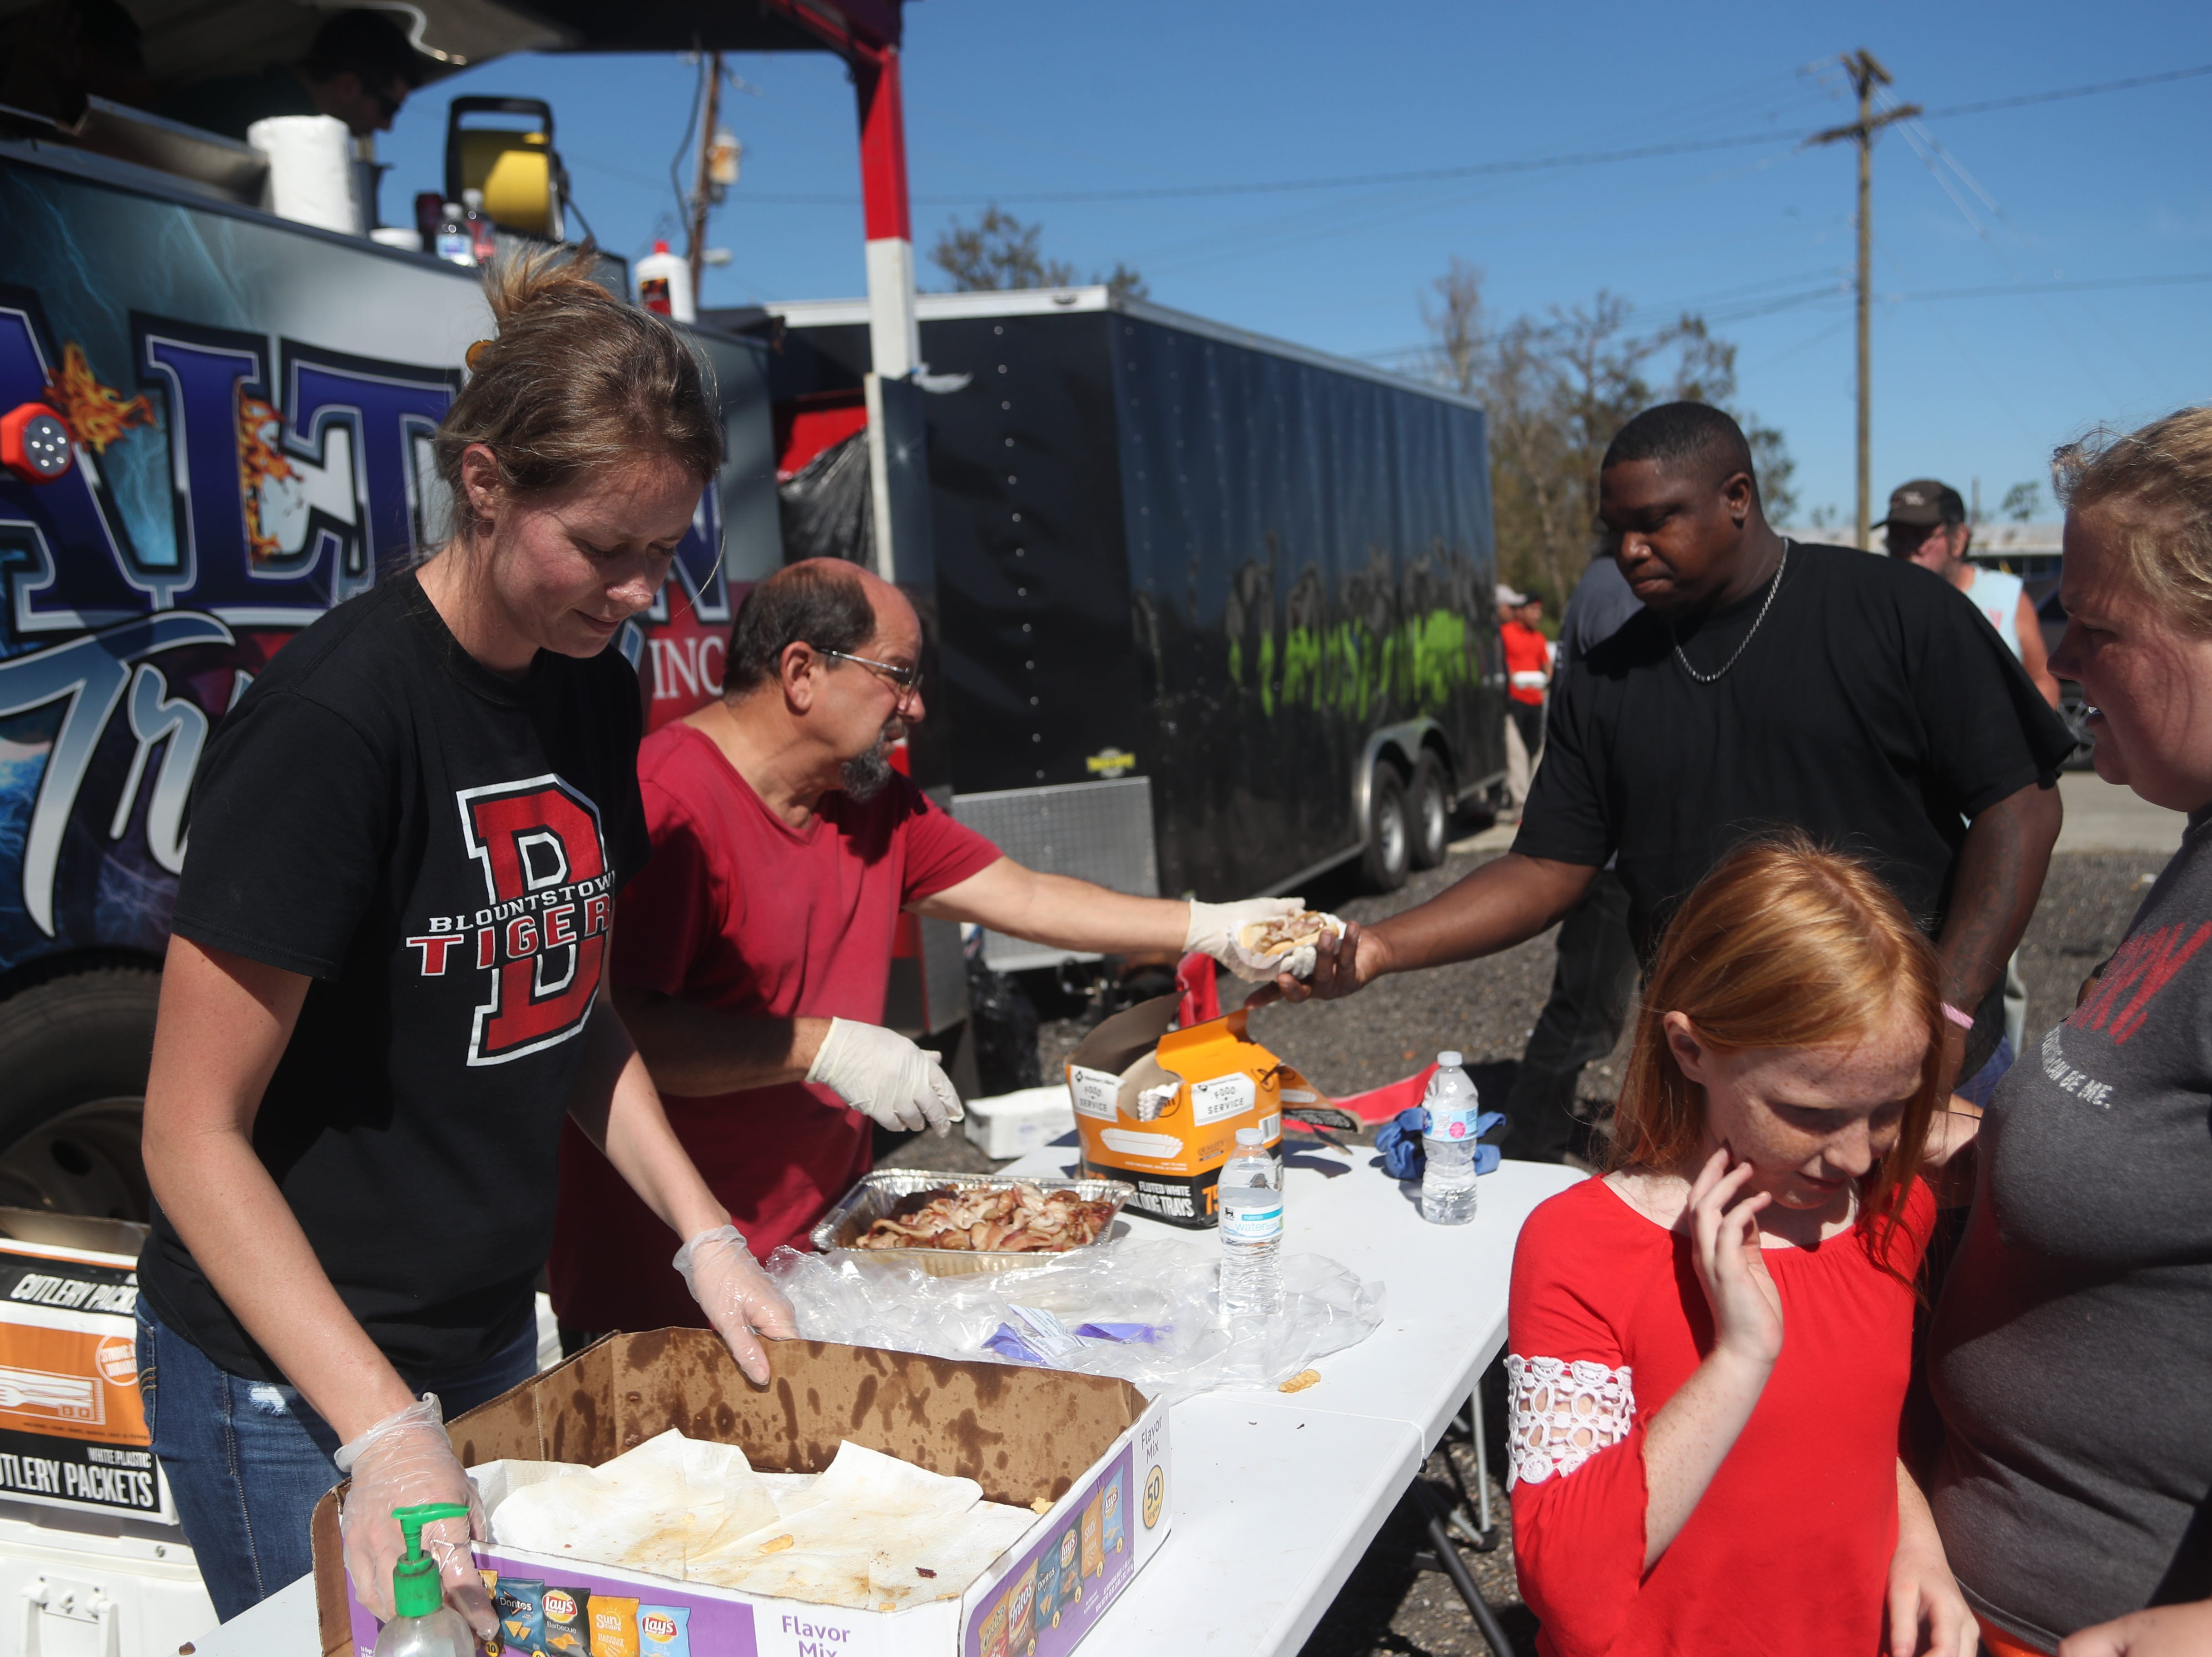 Dalton Trucking Inc. brings food to those in Blountstown, Fla. and Calhoun County in the aftermath of Hurricane Michael Friday, Oct. 12, 2018.